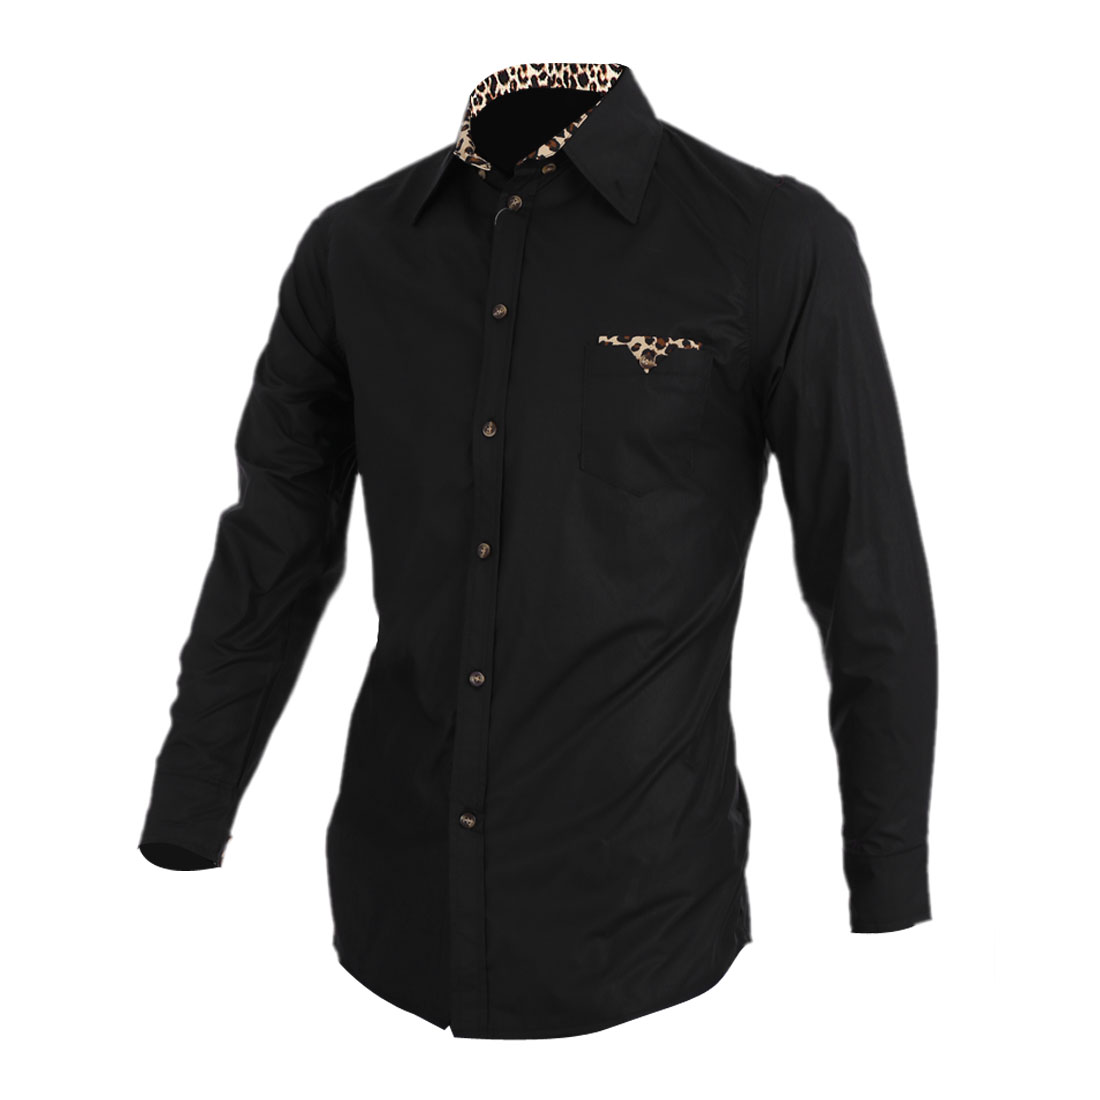 Men Point Collar Leopard Decor Chest Pocket Shirt Black S